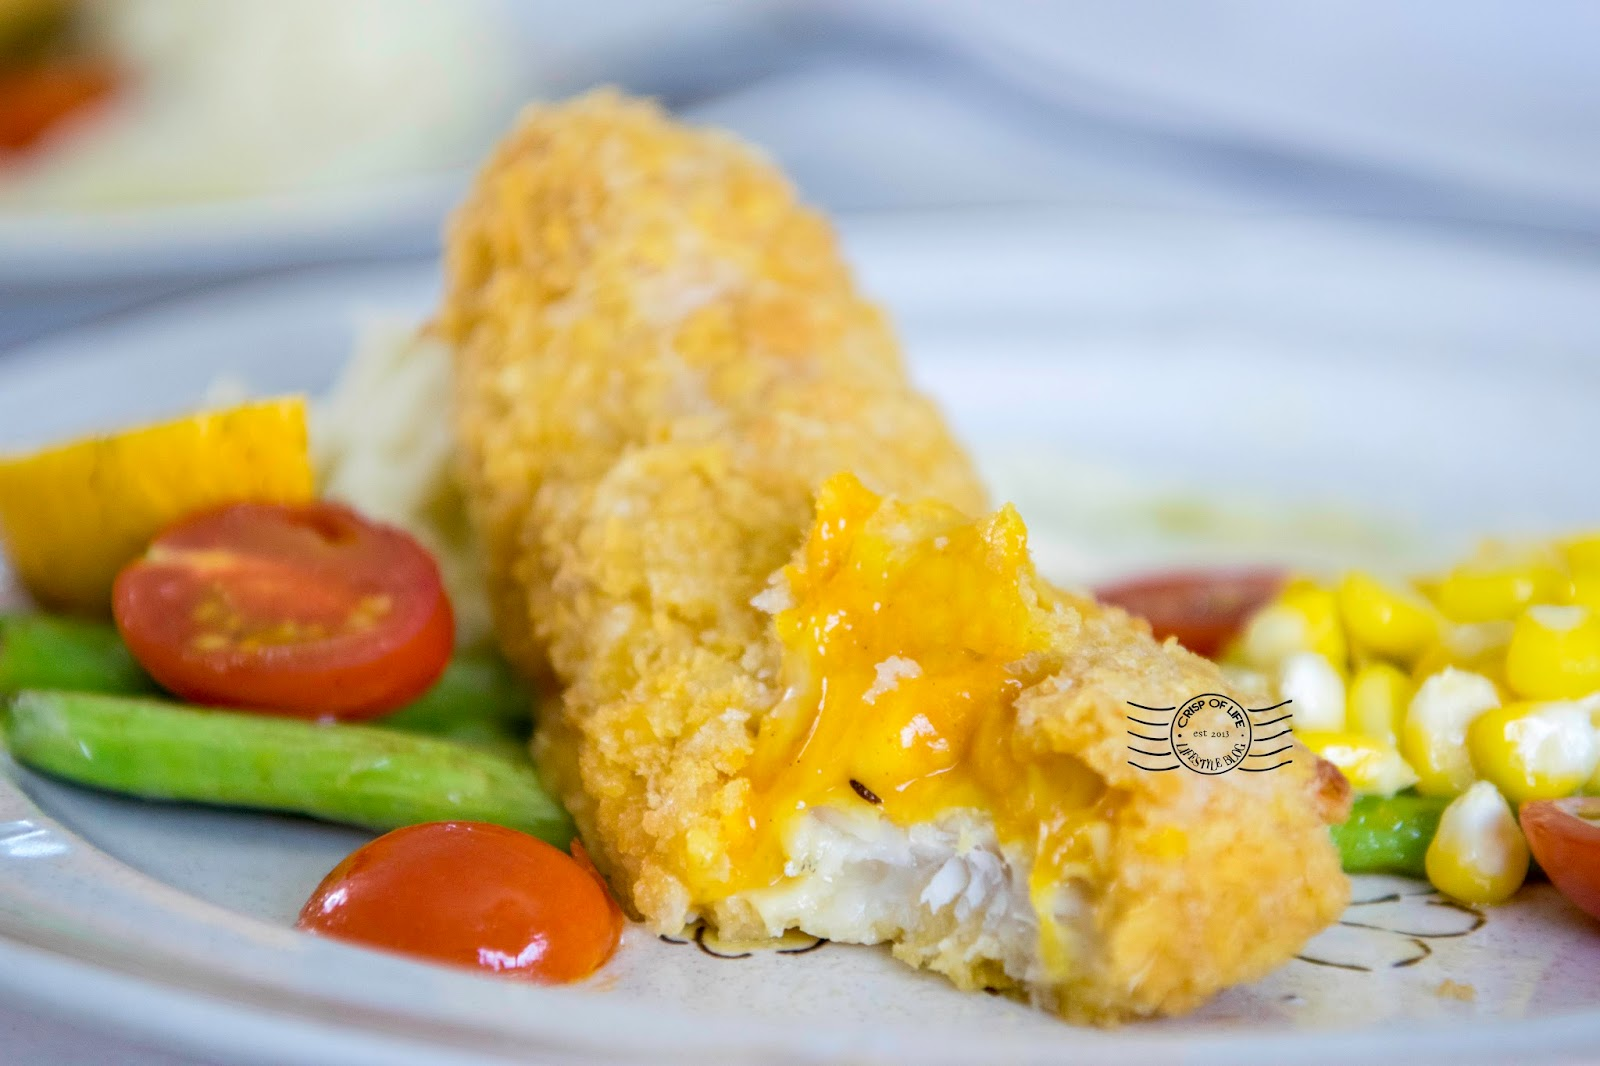 Pacific West Cheezy Fish Fillet Malaysia